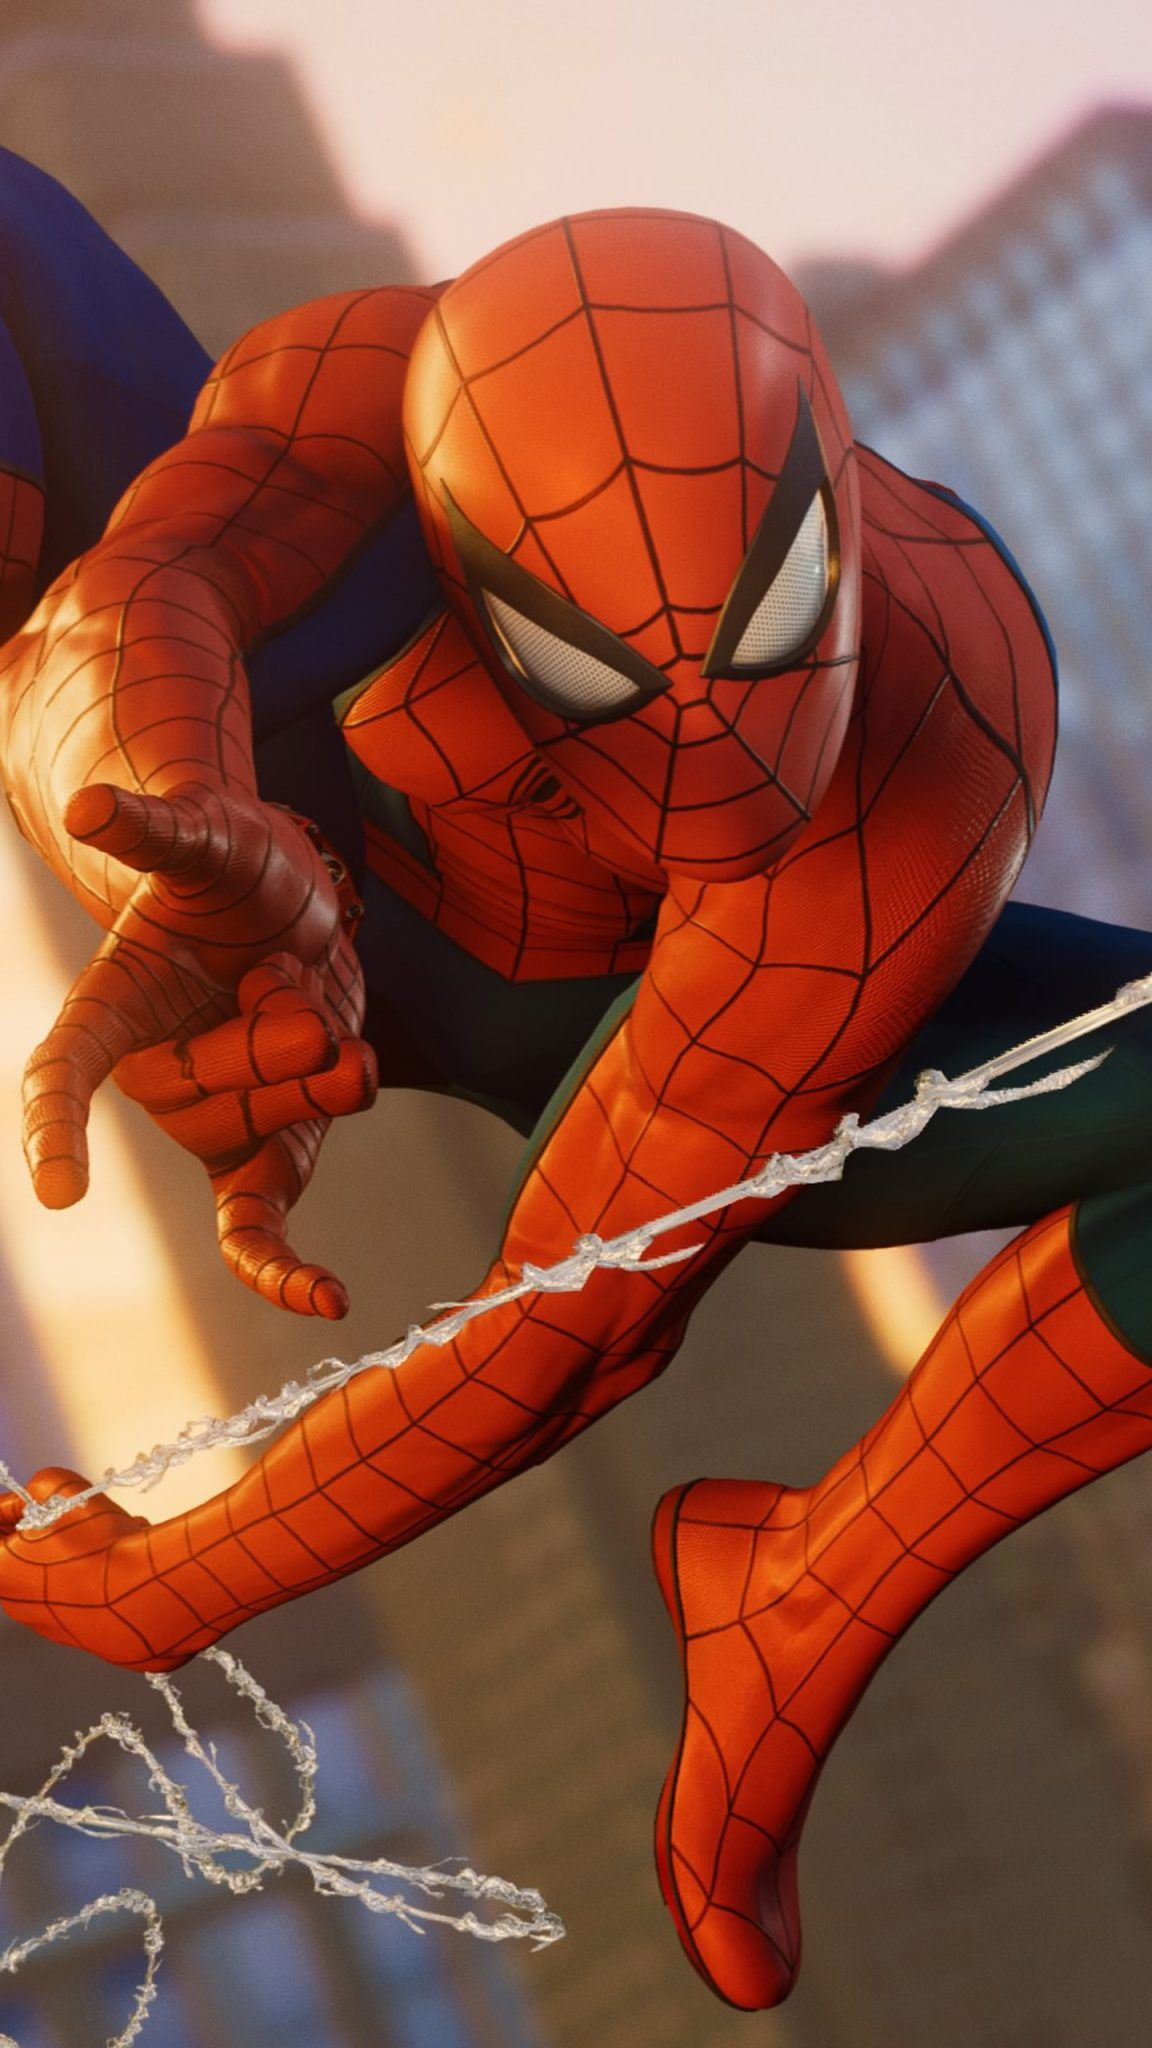 Top Spiderman Wallpapers Ps4 Homecoming Into The Spider Verse Update Freak Spiderman Homecoming Tom Holland Spiderman Amazing Spiderman Marvel Spiderman